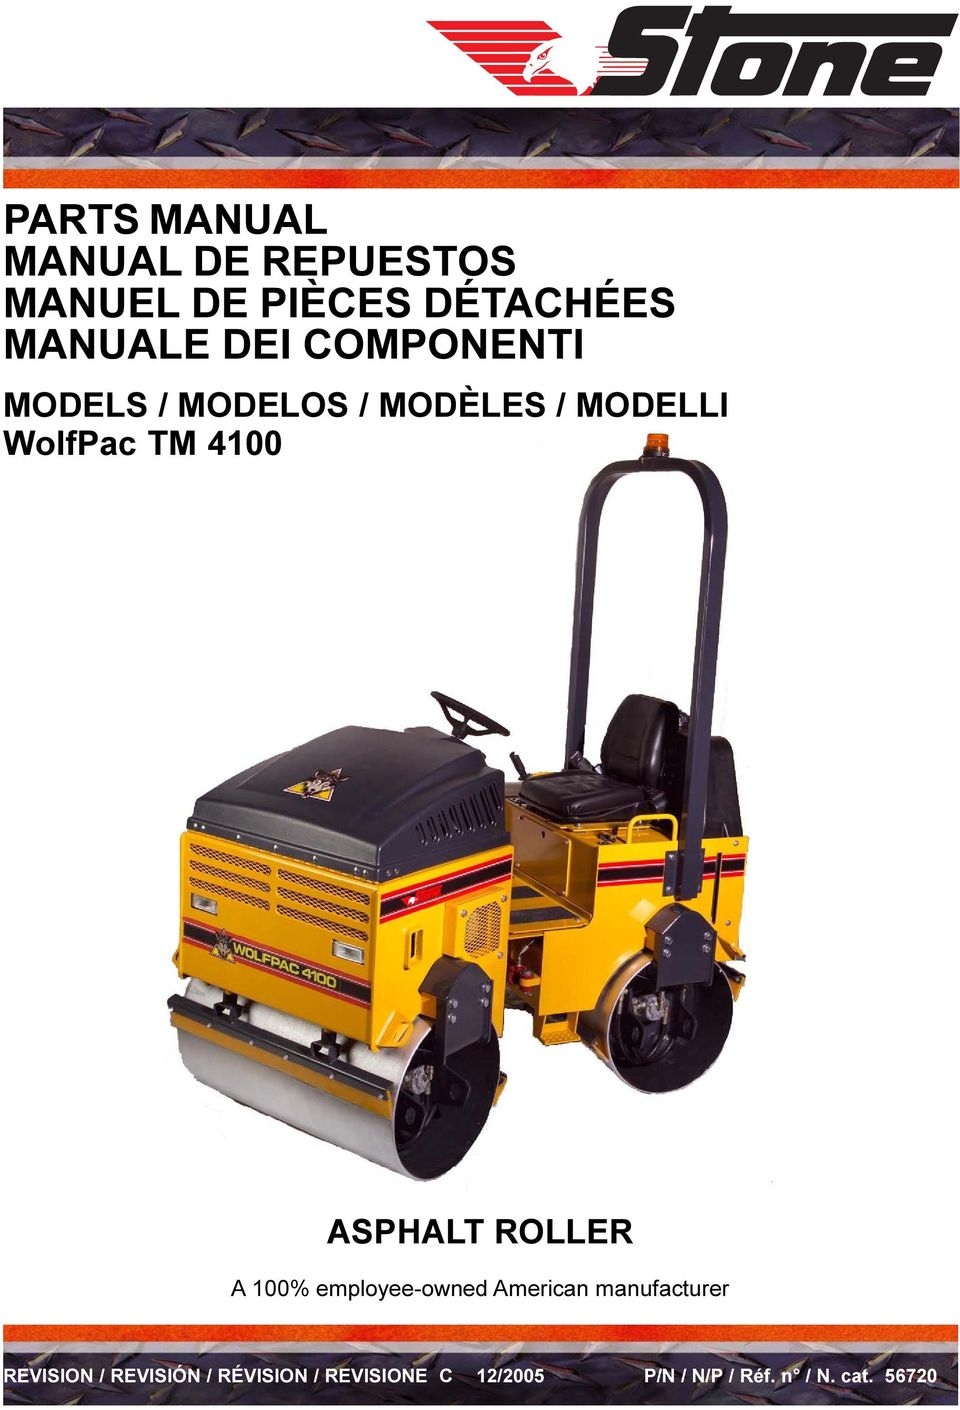 ASPHALT ROLLER A 100% employee-owned American manufacturer REVISION /